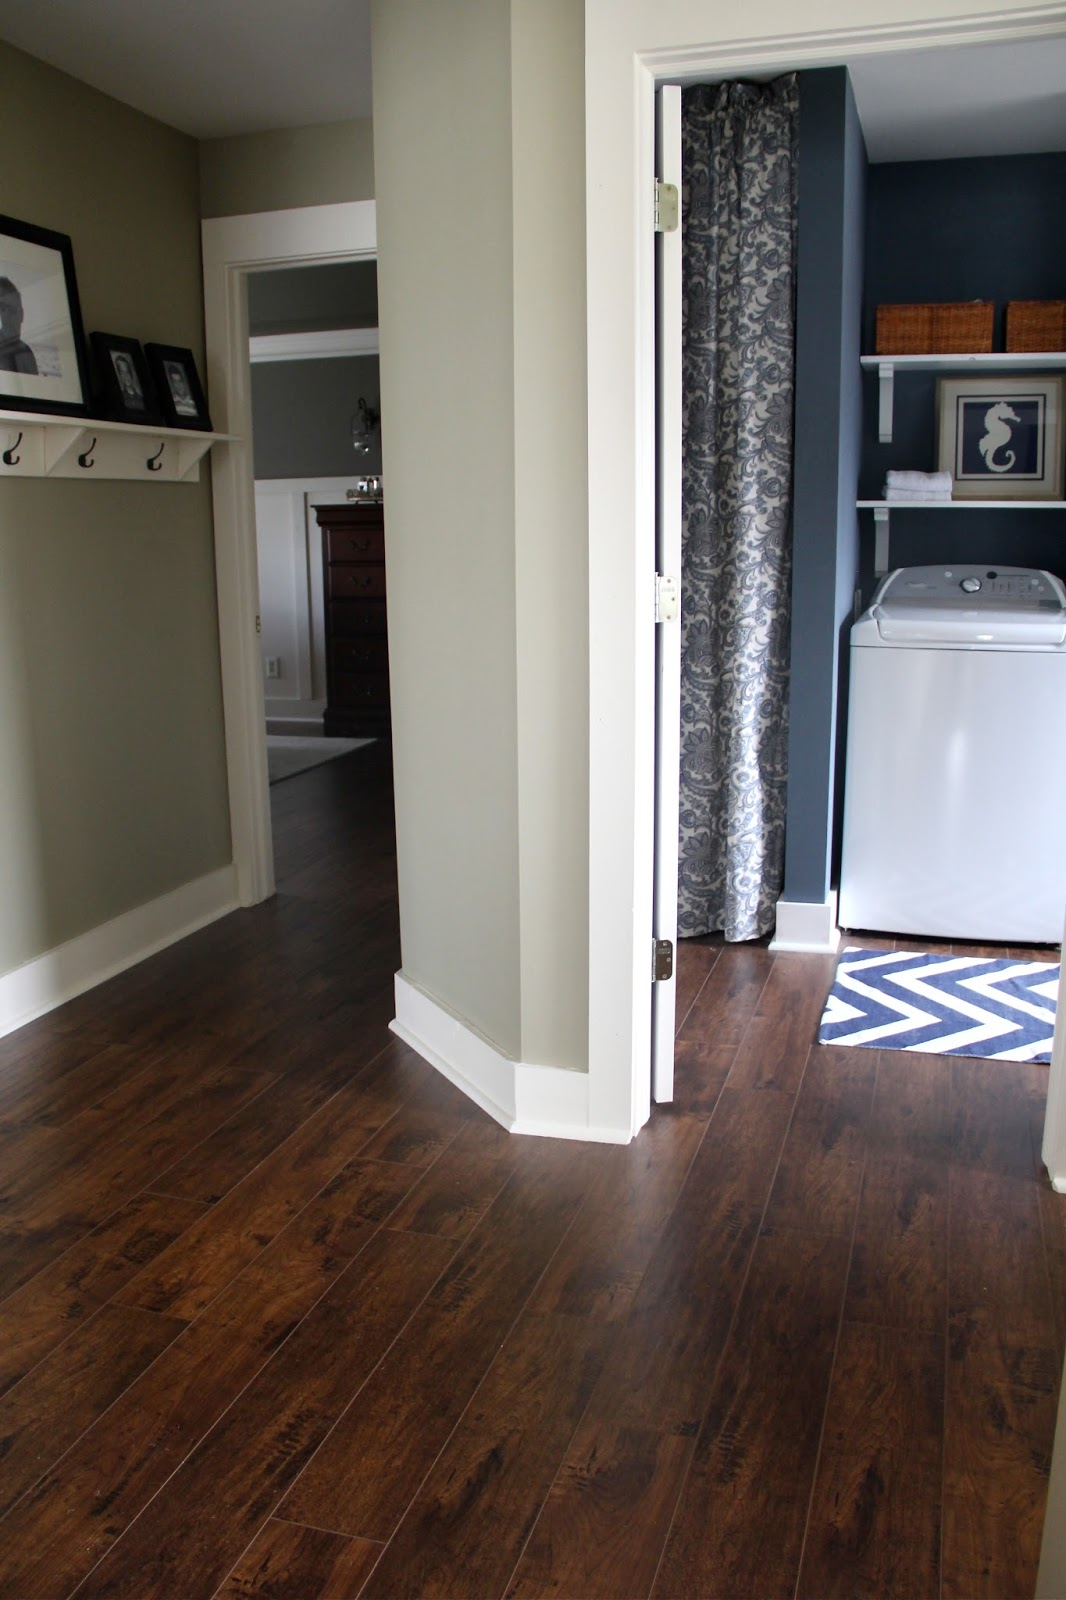 The Yellow Cape Cod How To Transition Between Two Different Wood | Carpeted Stairs To Wood Floor Transition | Laminate Flooring | Staircase | Hall Carpet Transition | Metal Edge Transition | Wooden